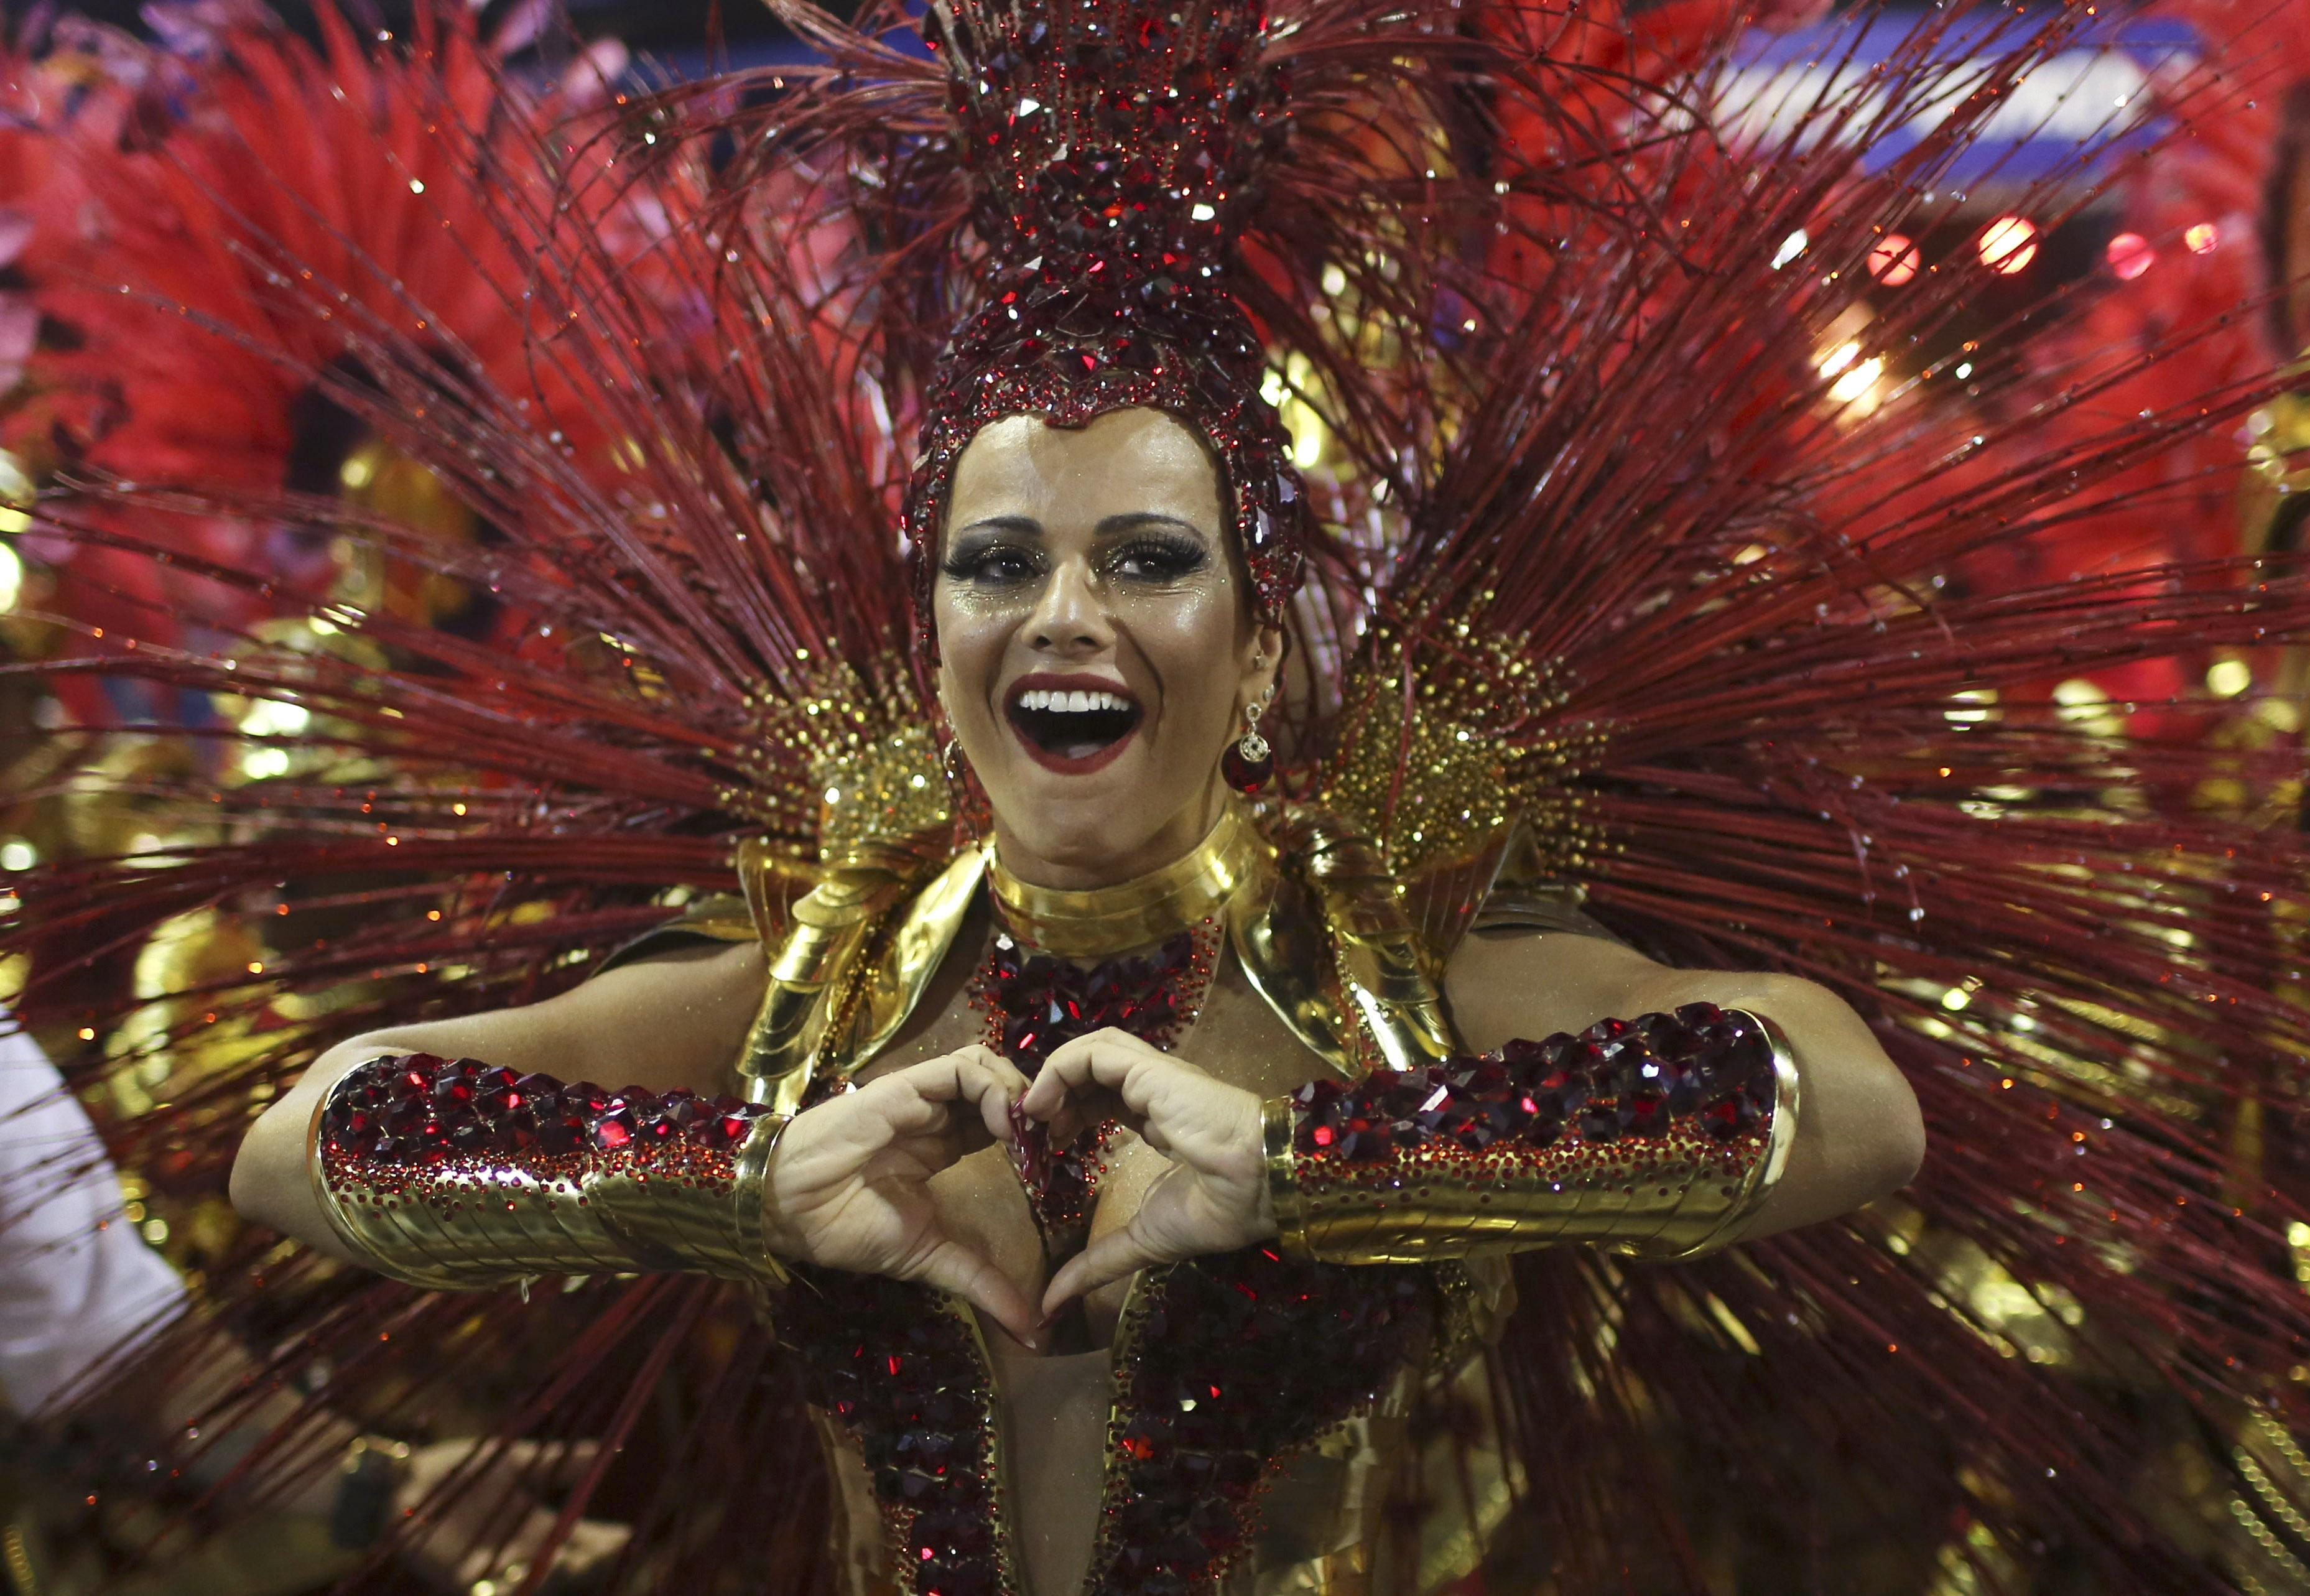 Rio Carnival 2014: Craziest Costumes at the Parade